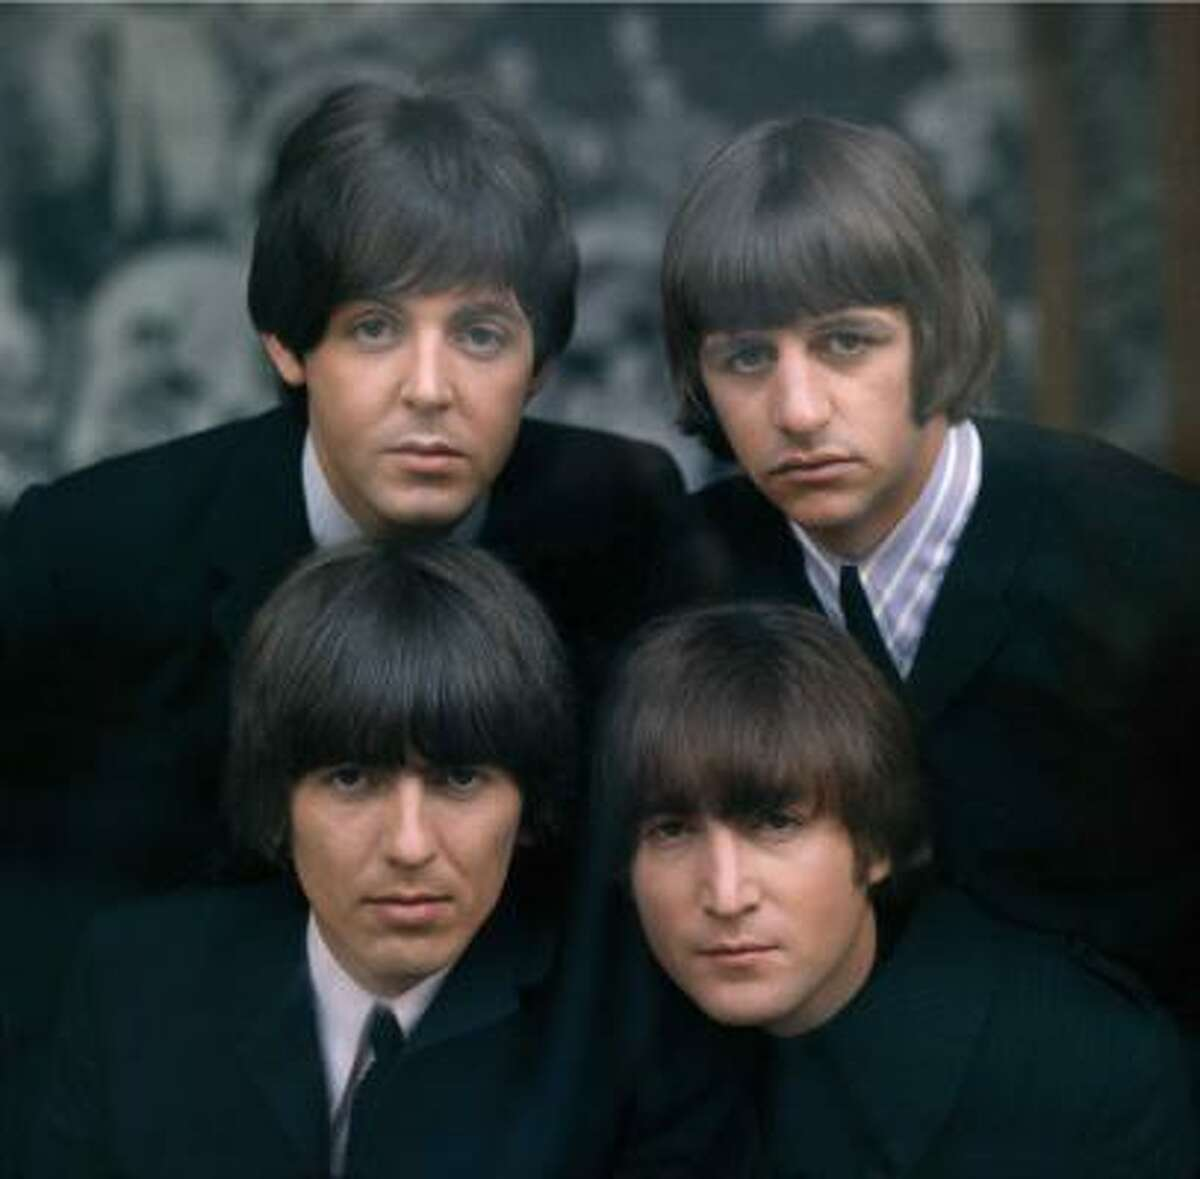 The Beatles' British Invasion music also made fans of their boy bangs look.